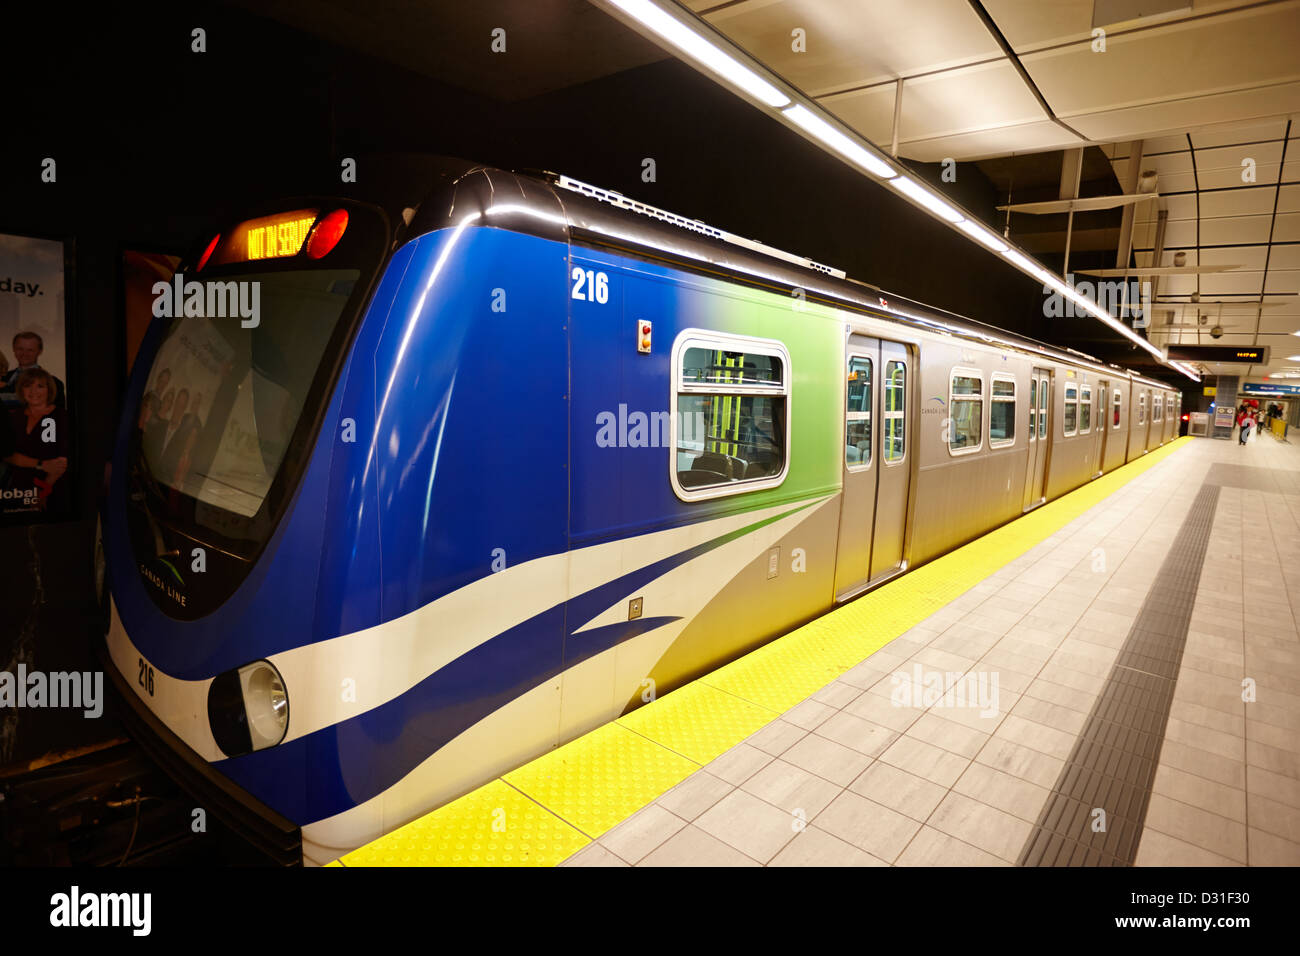 canada line skytrain at waterfront station platform Vancouver BC Canada Stock Photo